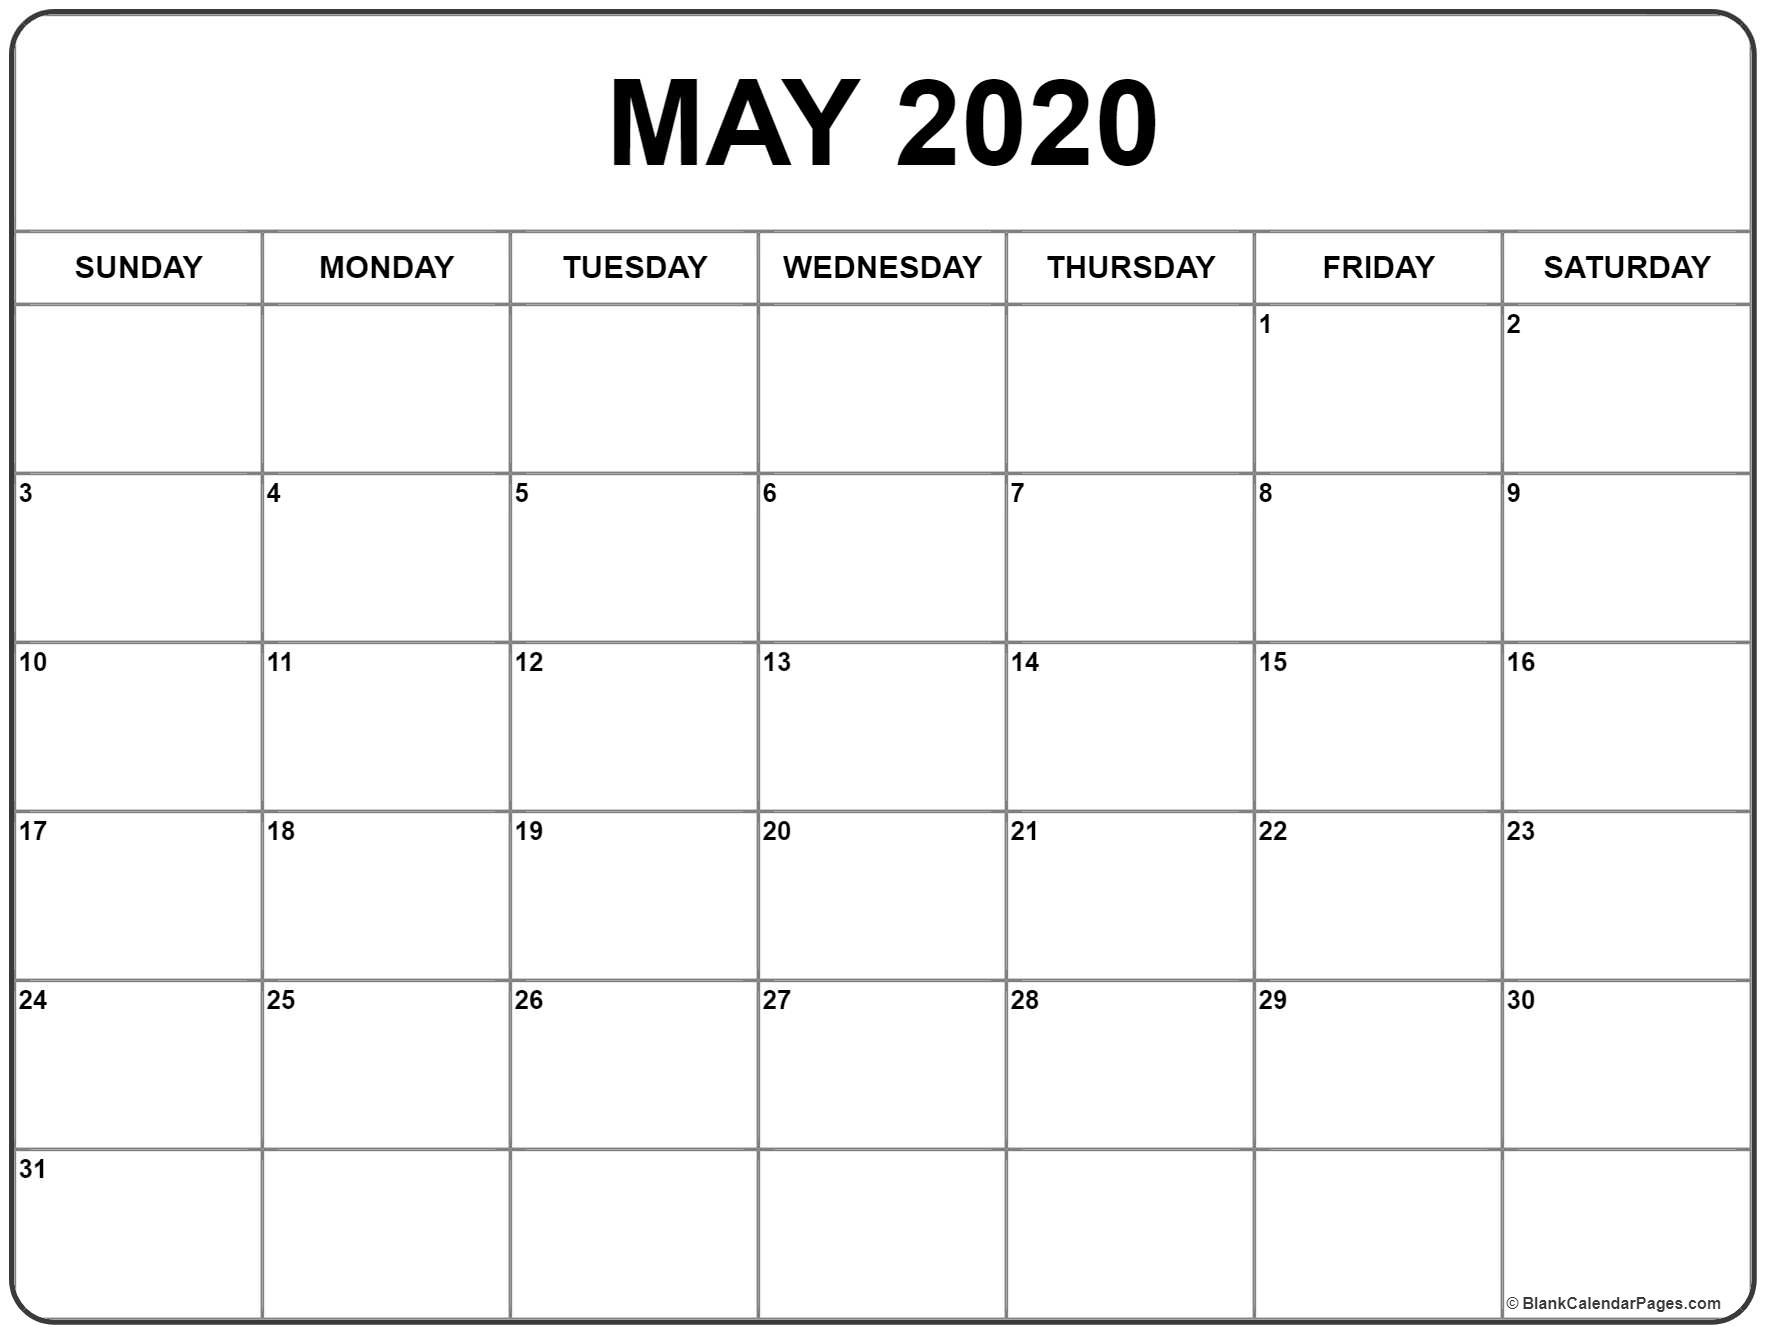 May 2020 Calendar | Free Printable Monthly Calendars  Calendar Templates 2020 Printable